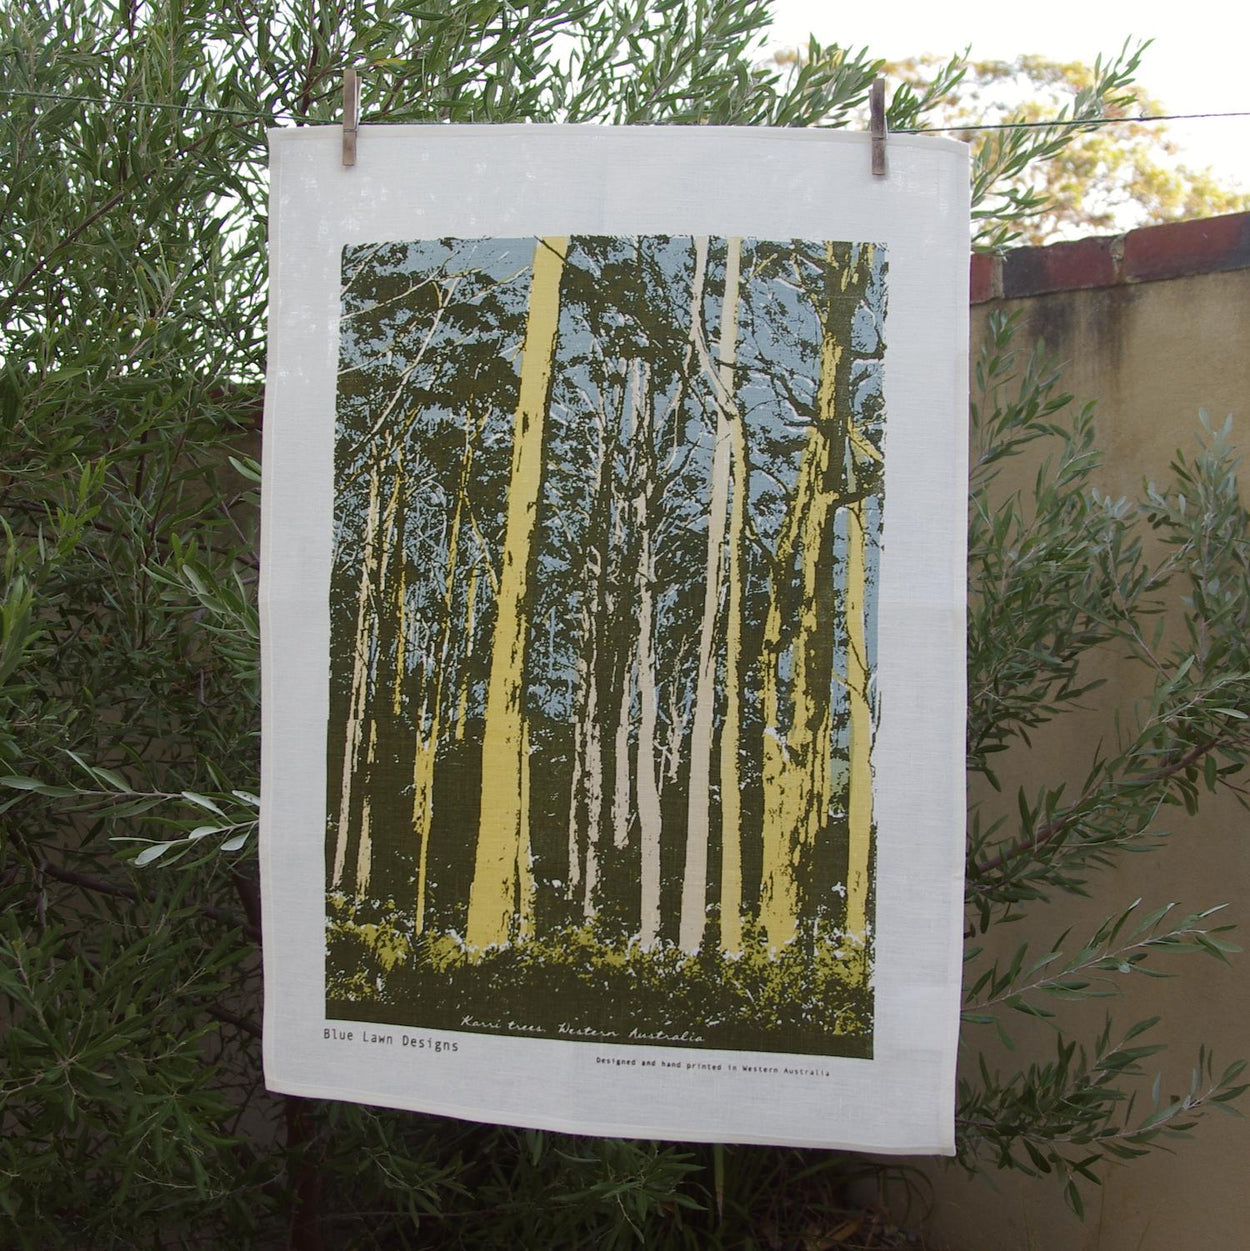 Photograph of Western Australian karri trees screenprinted on a tea towel.